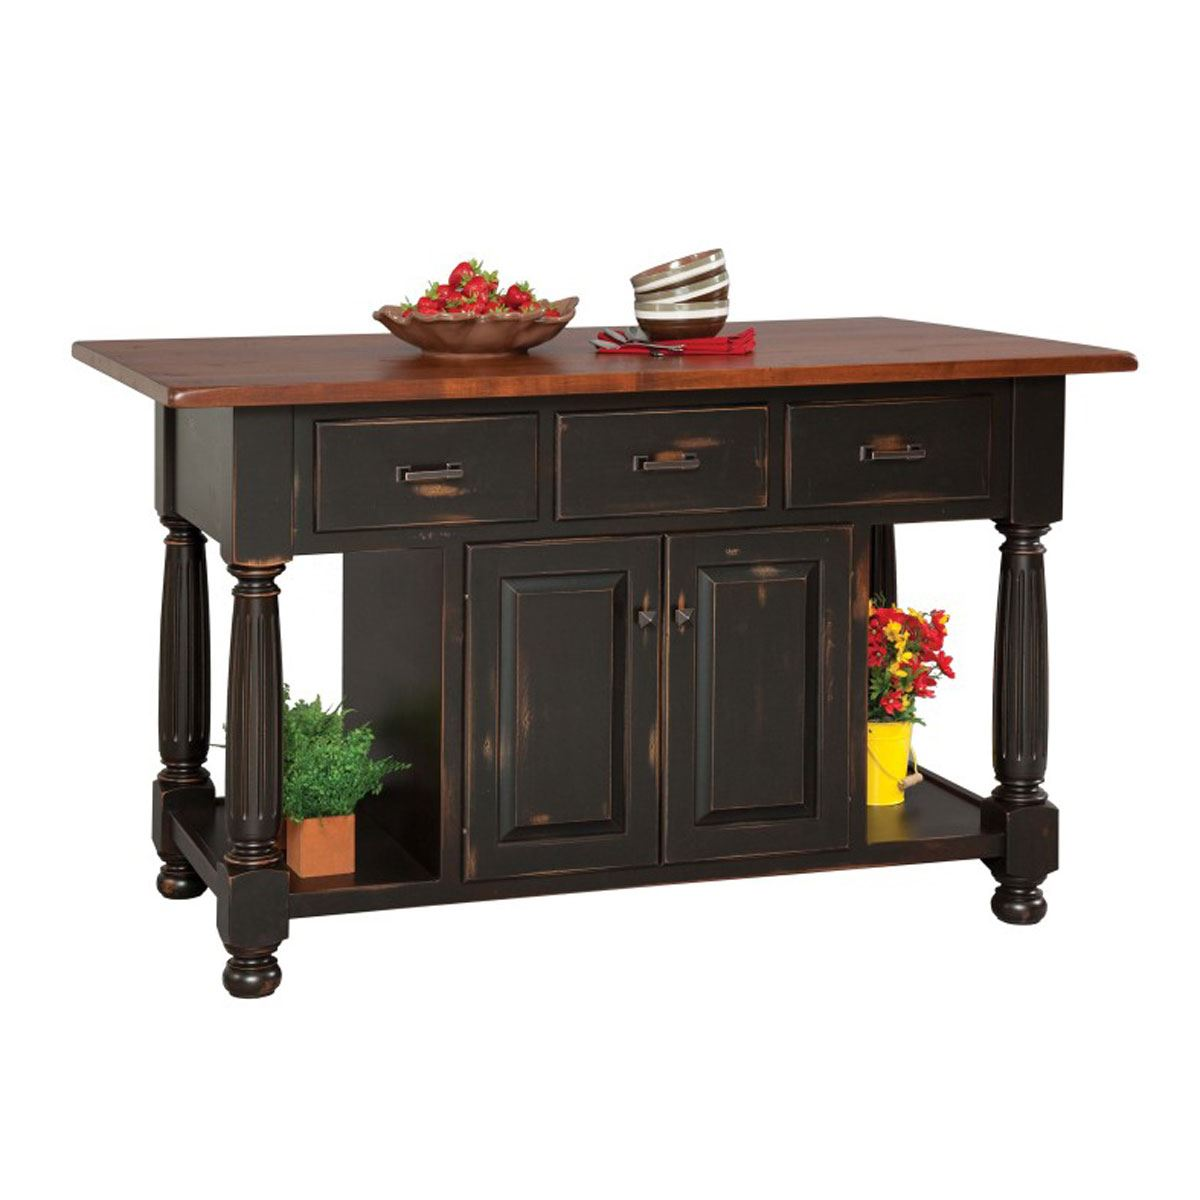 French Country Three Drawer Island